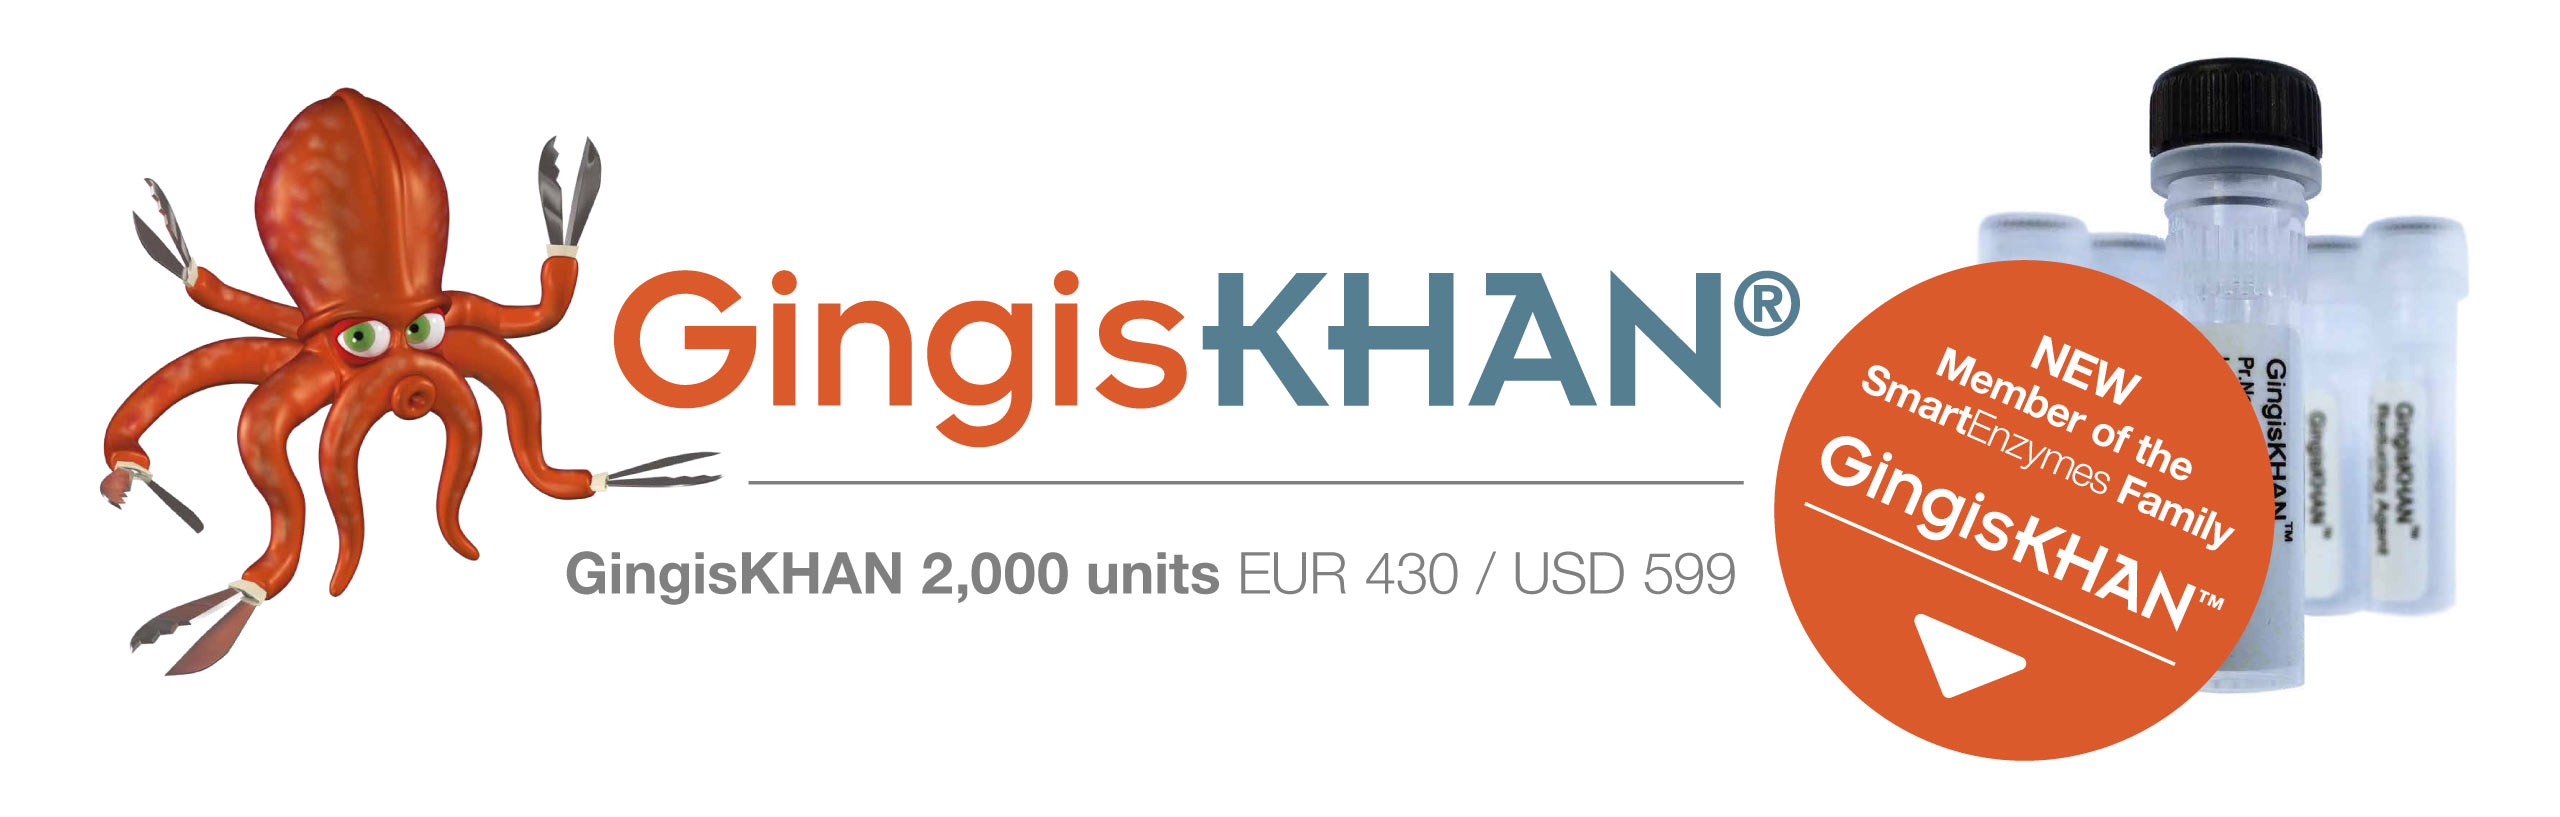 2018-GingisKHAN_Banner_2560x817px